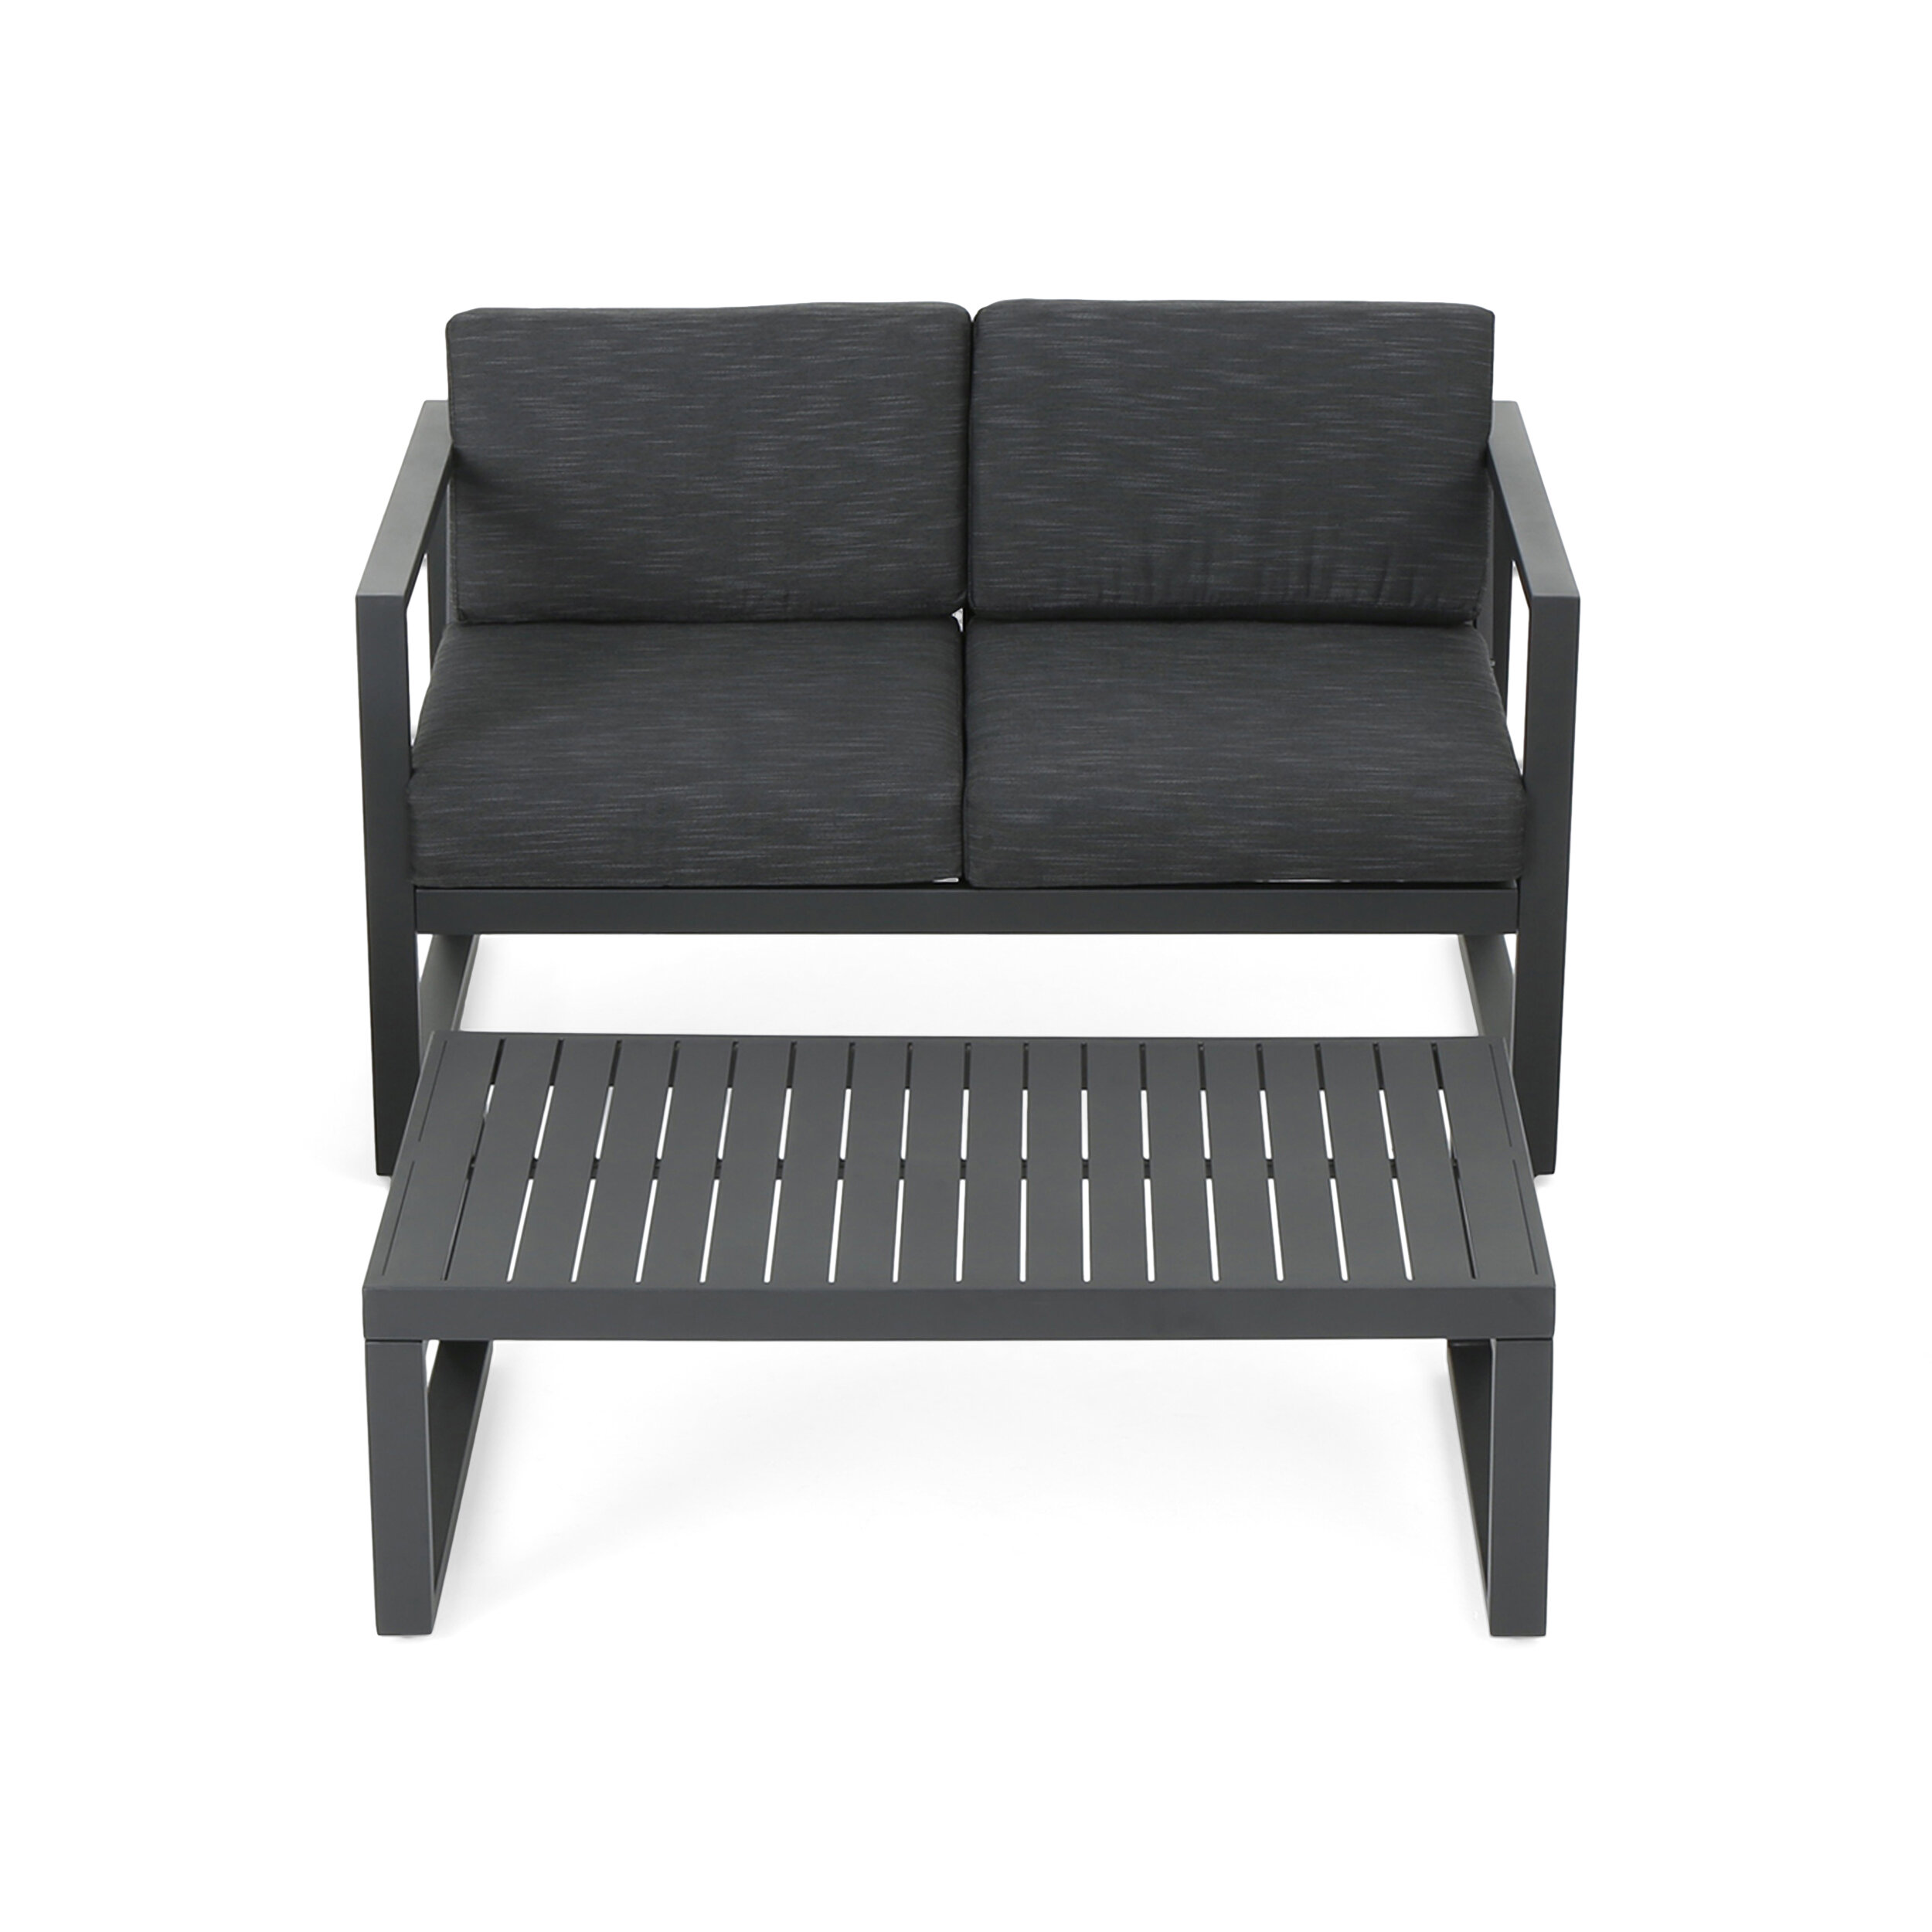 Mirando 2 Piece Sofa Seating Group with Cushions